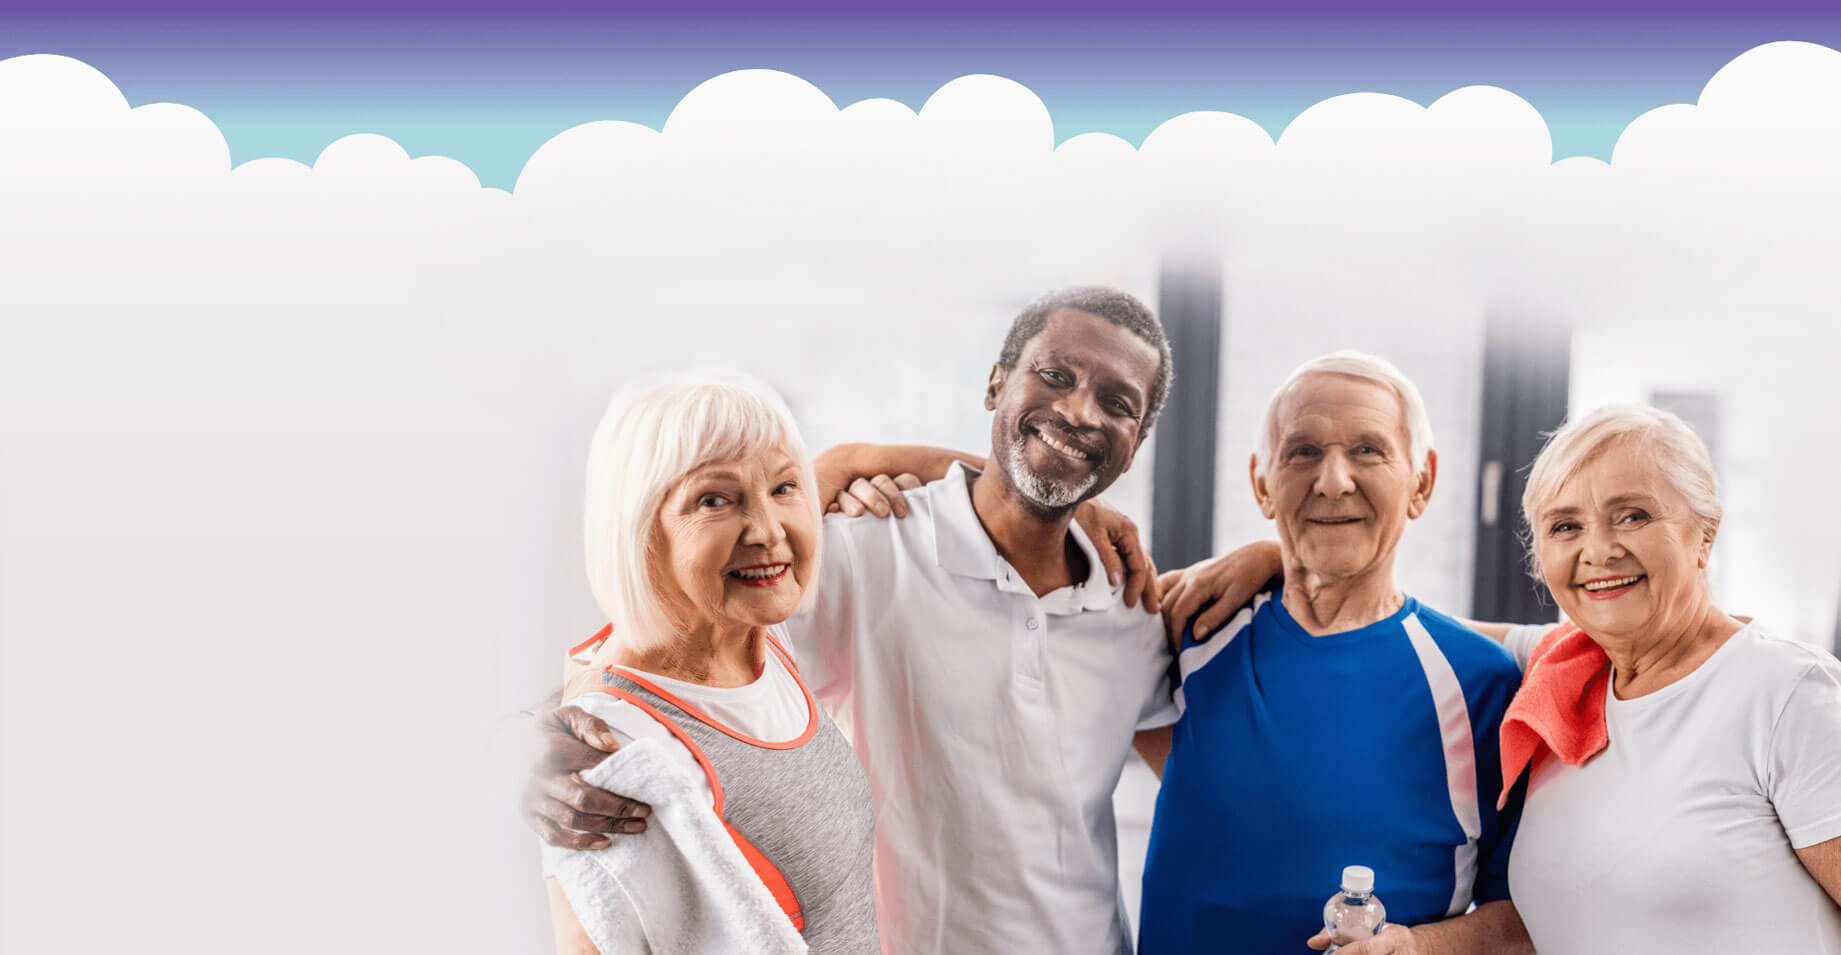 Group of elderly people smiling at the camera